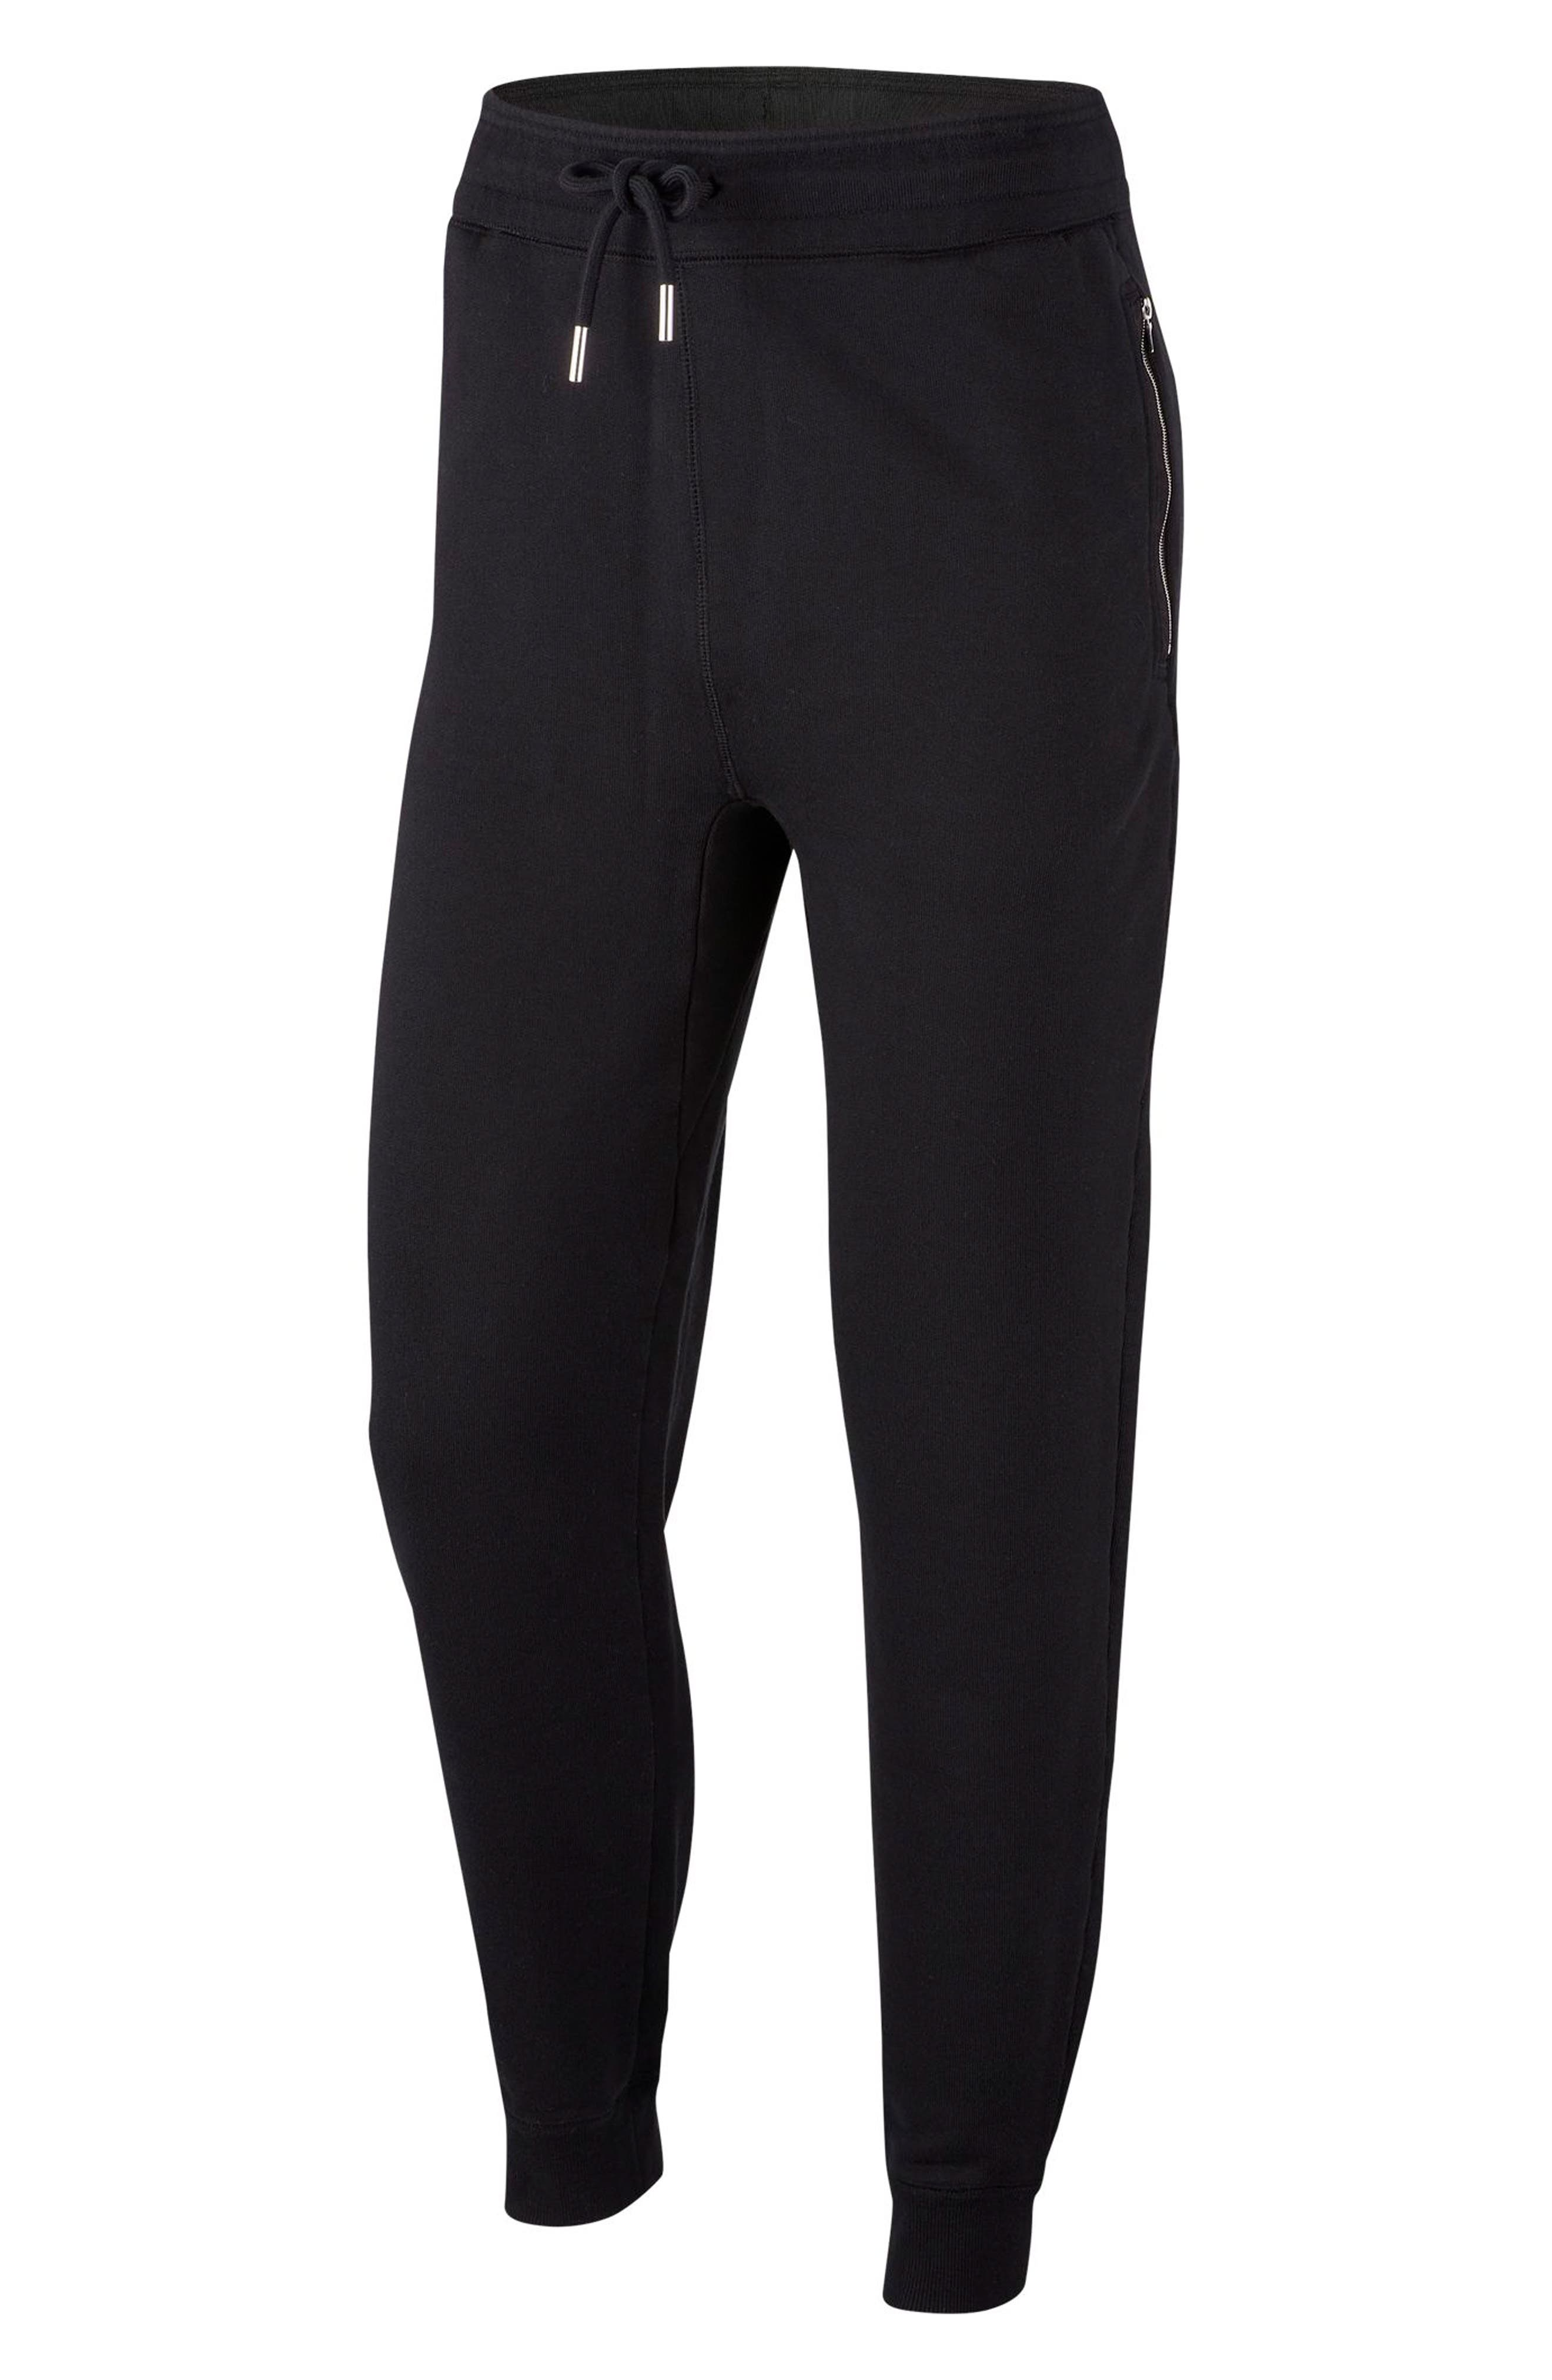 Men's Nike Jordan Black Cat Sweatpants